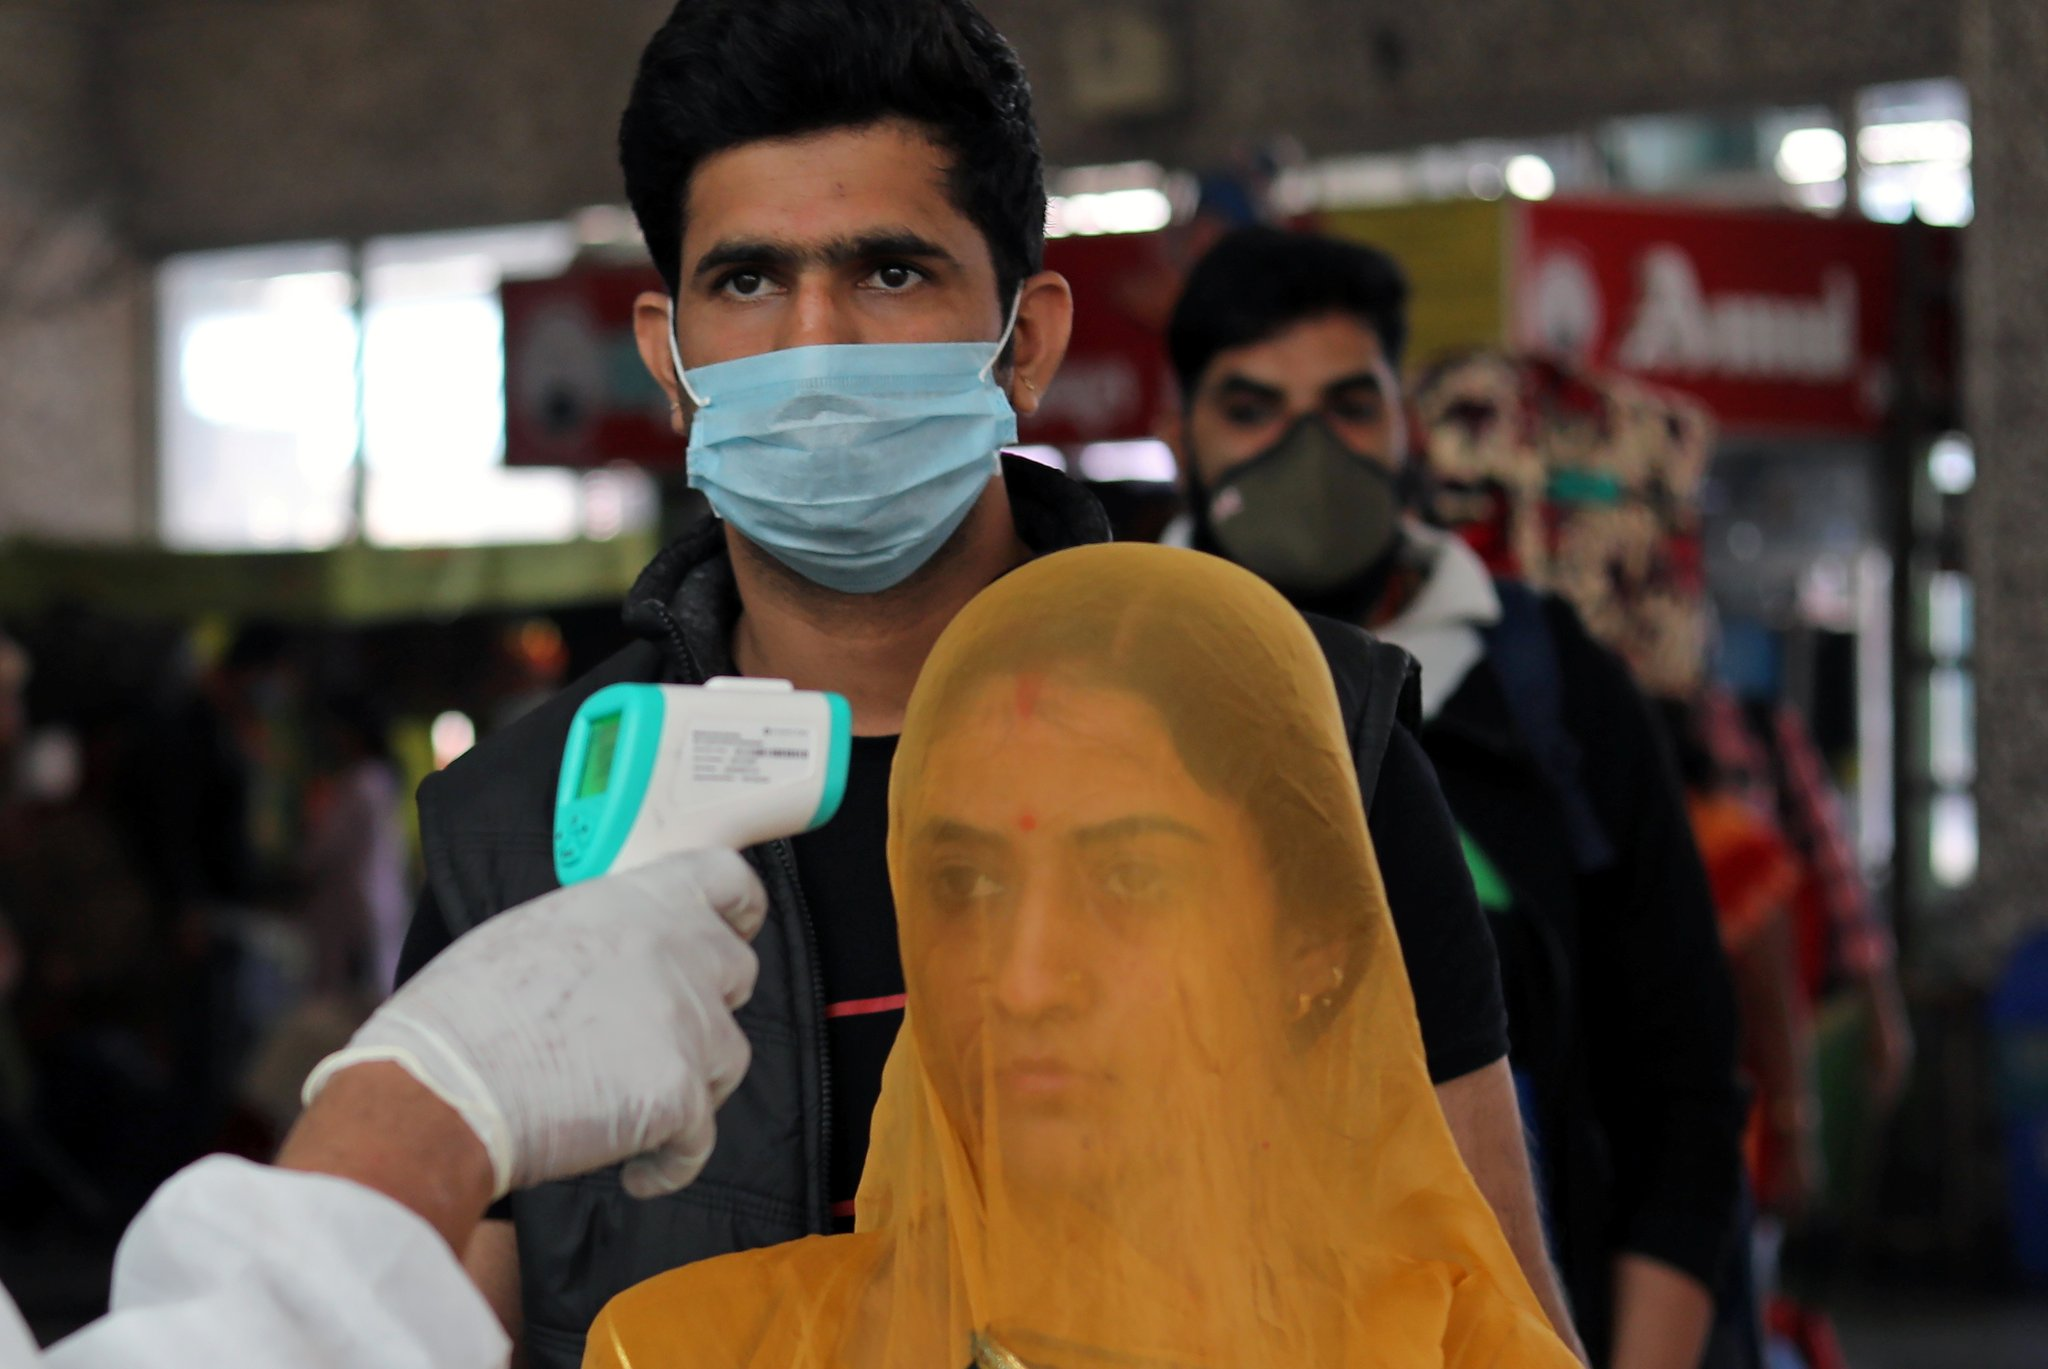 A health worker in personal protective equipment (PPE) checks the temperature of passengers amid the spread of the coronavirus disease (COVID-19), at a railway station in Mumbai, India, December 19, 2020. REUTERS/Francis Mascarenhas